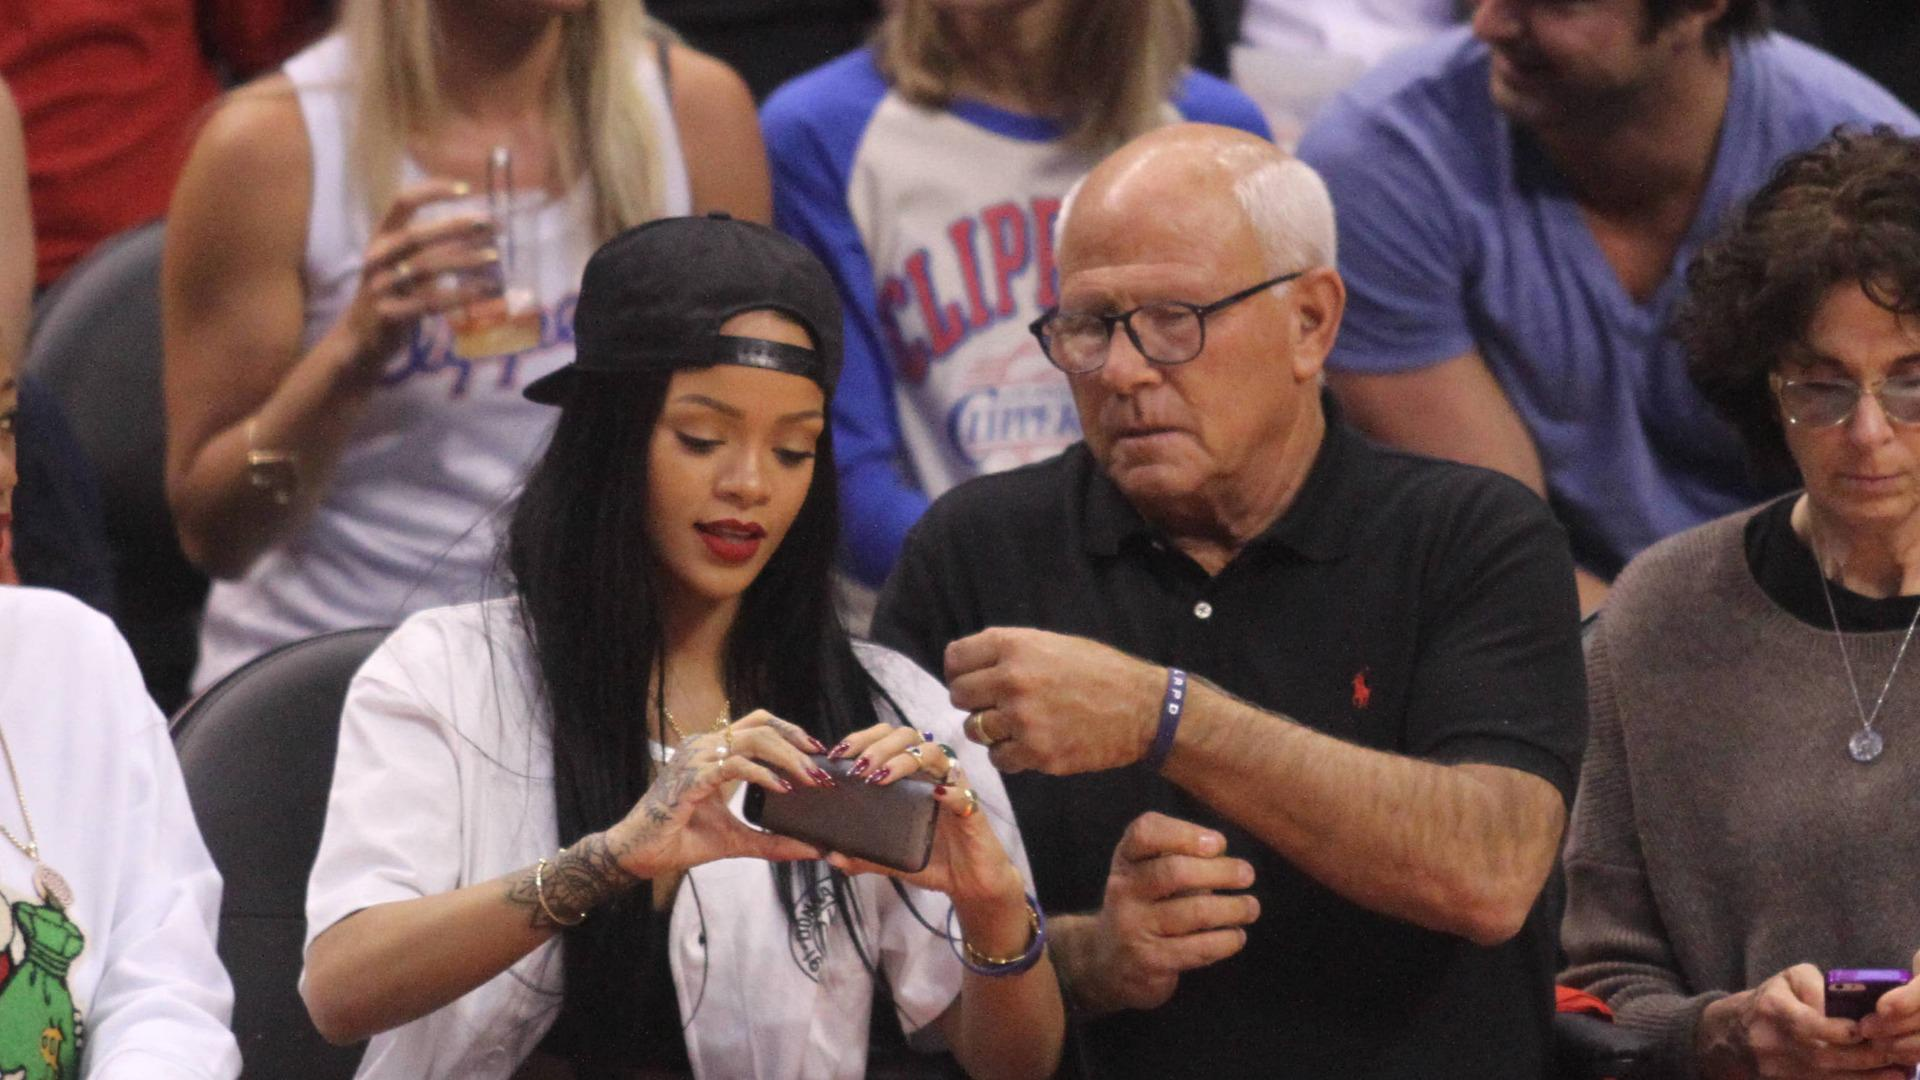 Rihanna donating $25k after selfie accident at Clippers game